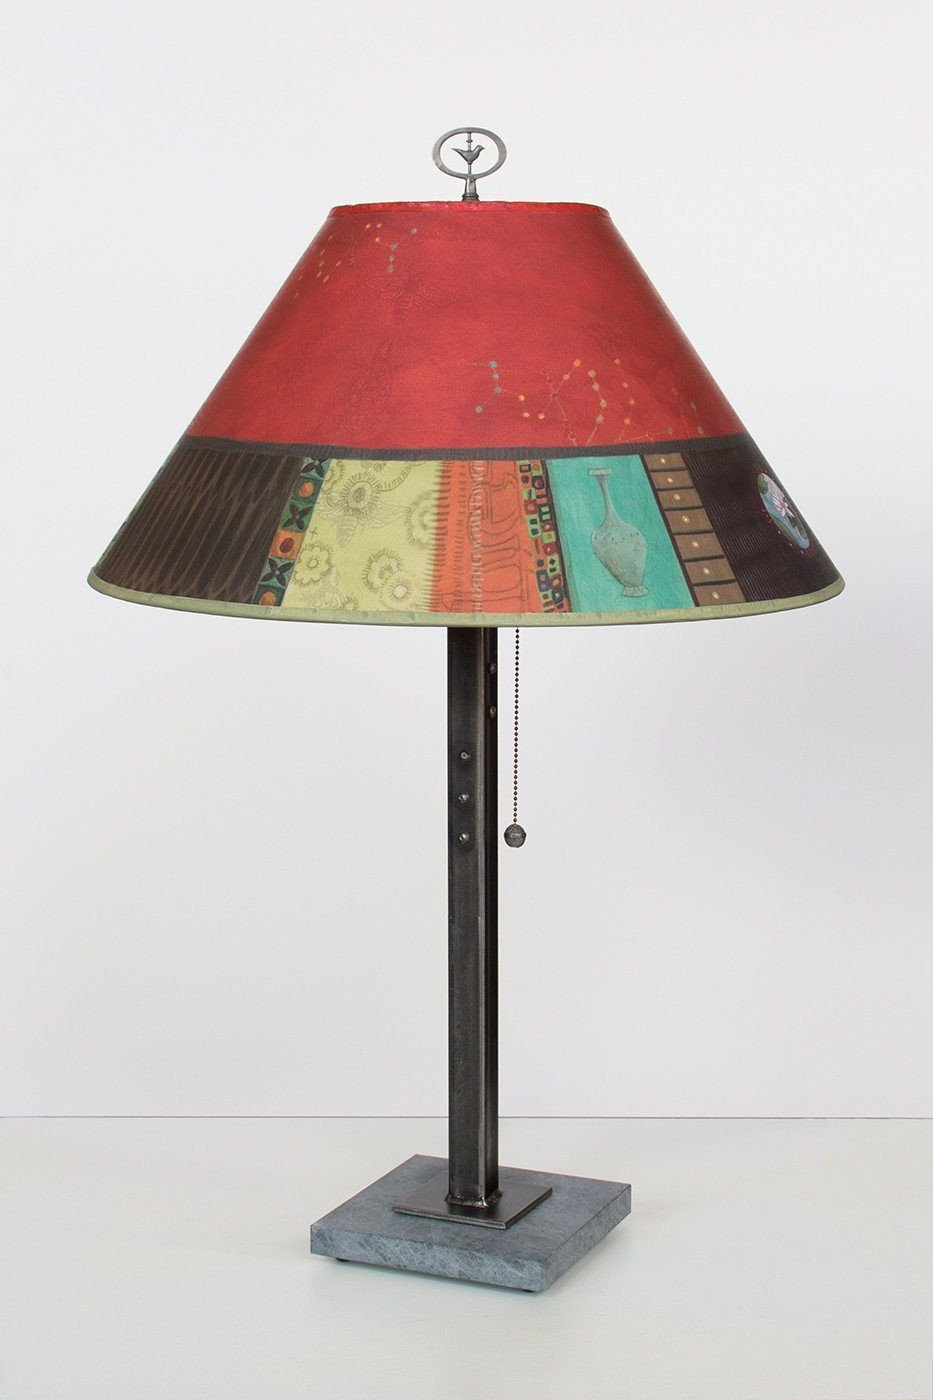 Steel Table Lamp on Italian Marble with Large Conical Shade in Red Match